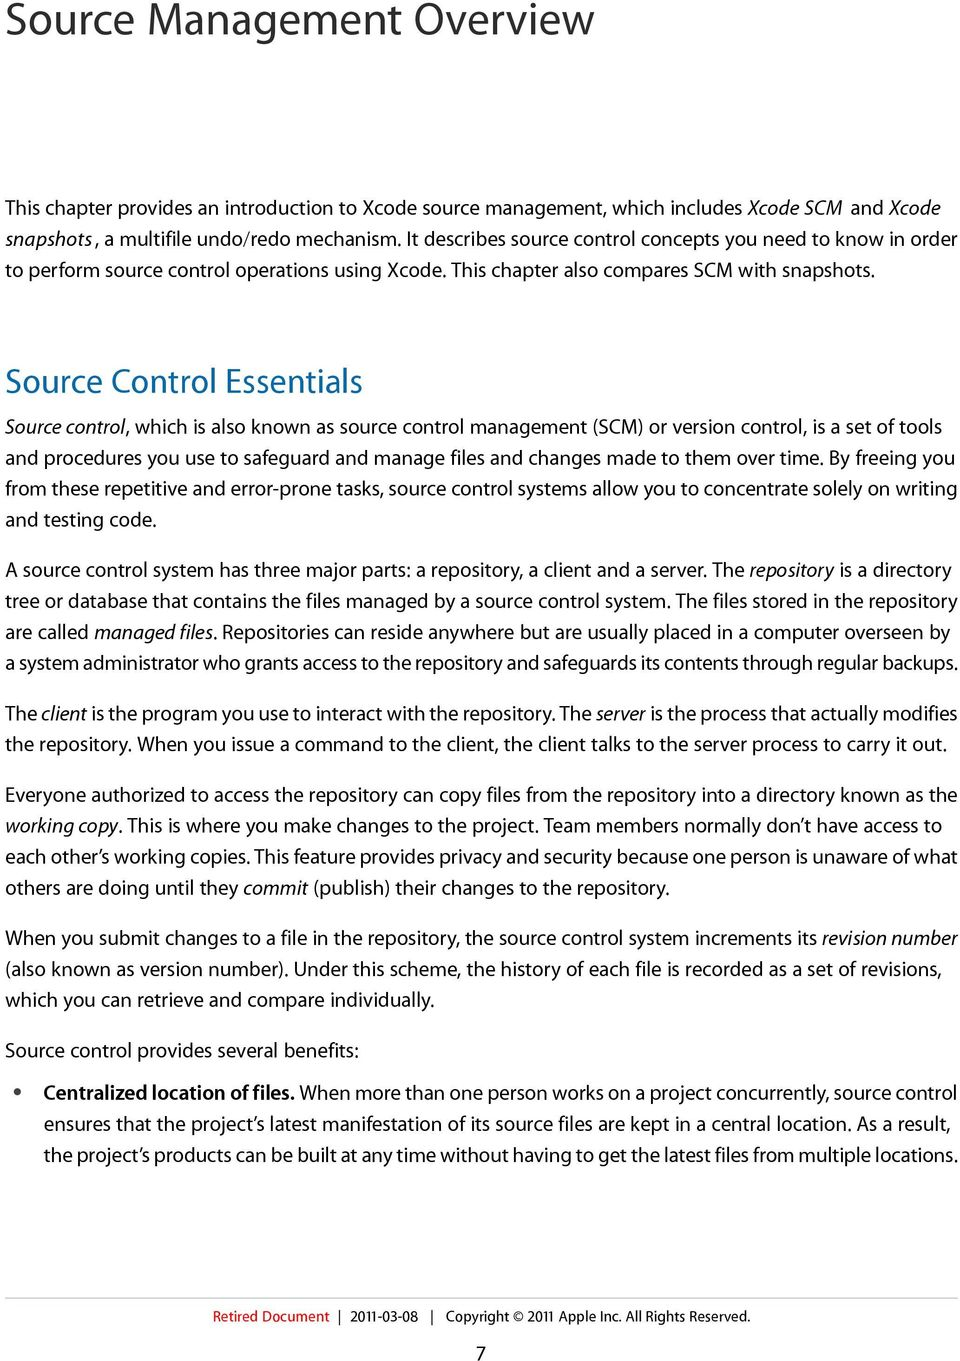 Source Control Essentials Source control, which is also known as source control management (SCM) or version control, is a set of tools and procedures you use to safeguard and manage files and changes